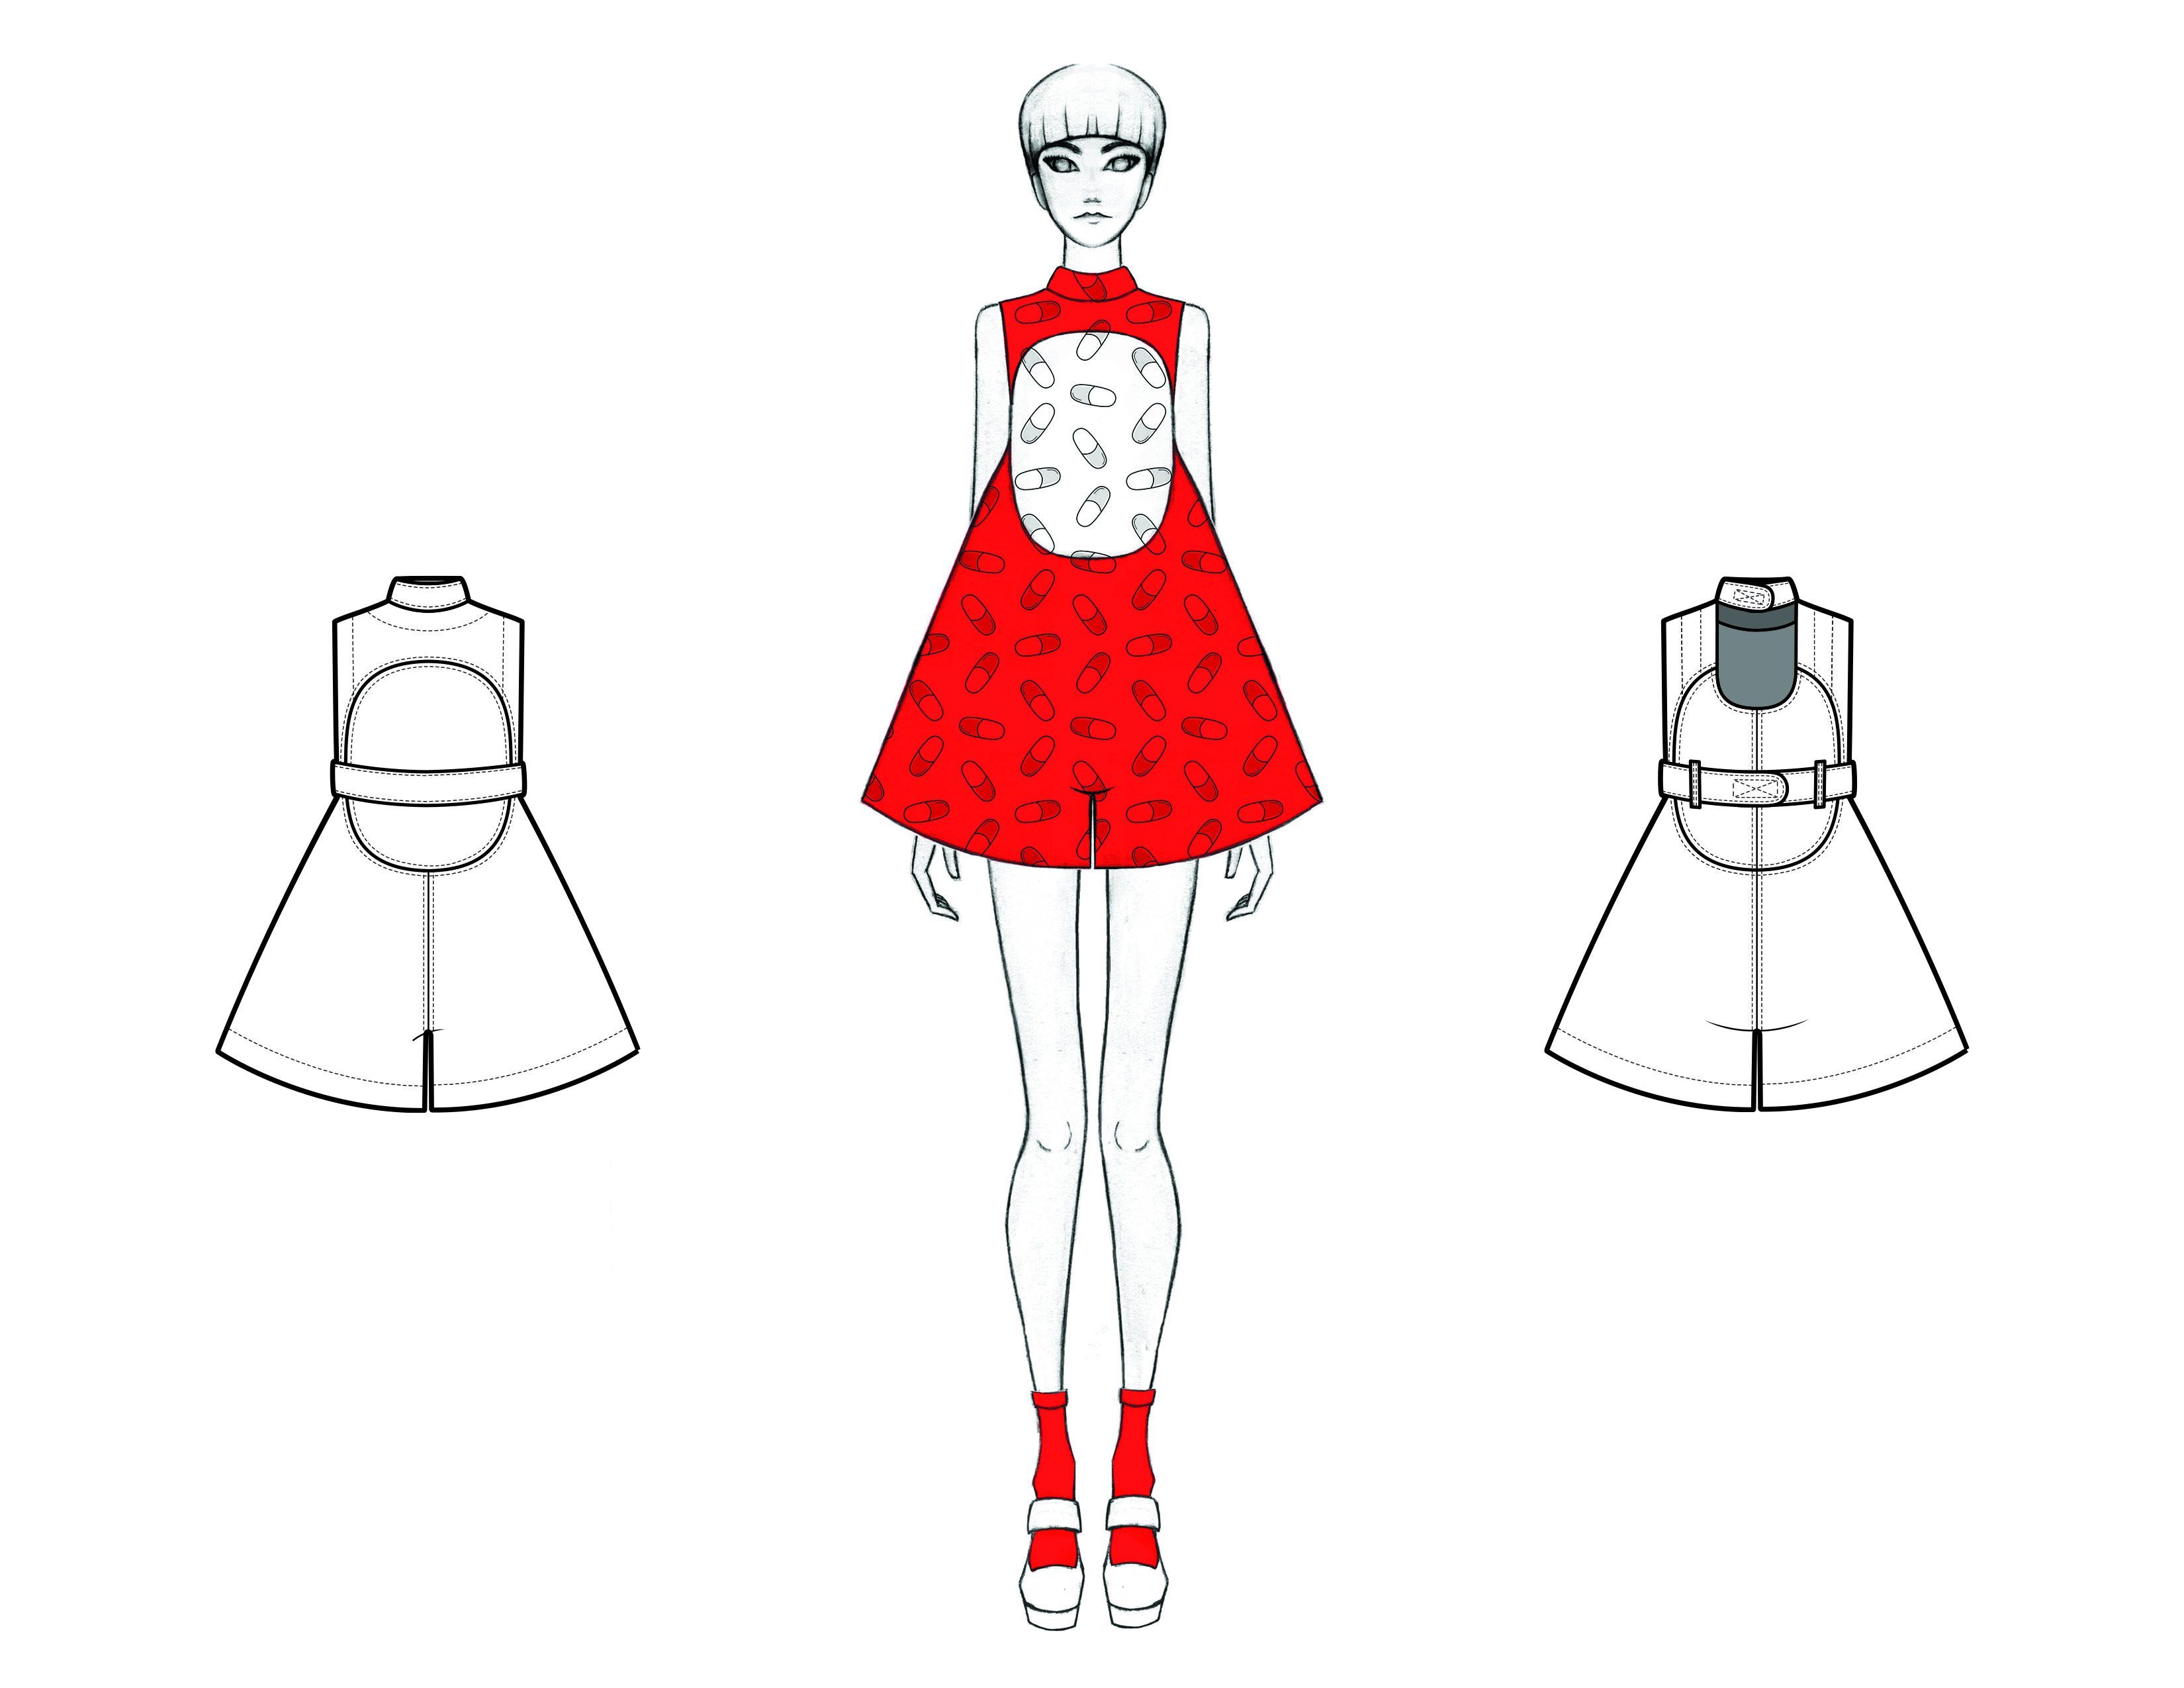 MGHN Capsule Look 20 Illustration and Flats